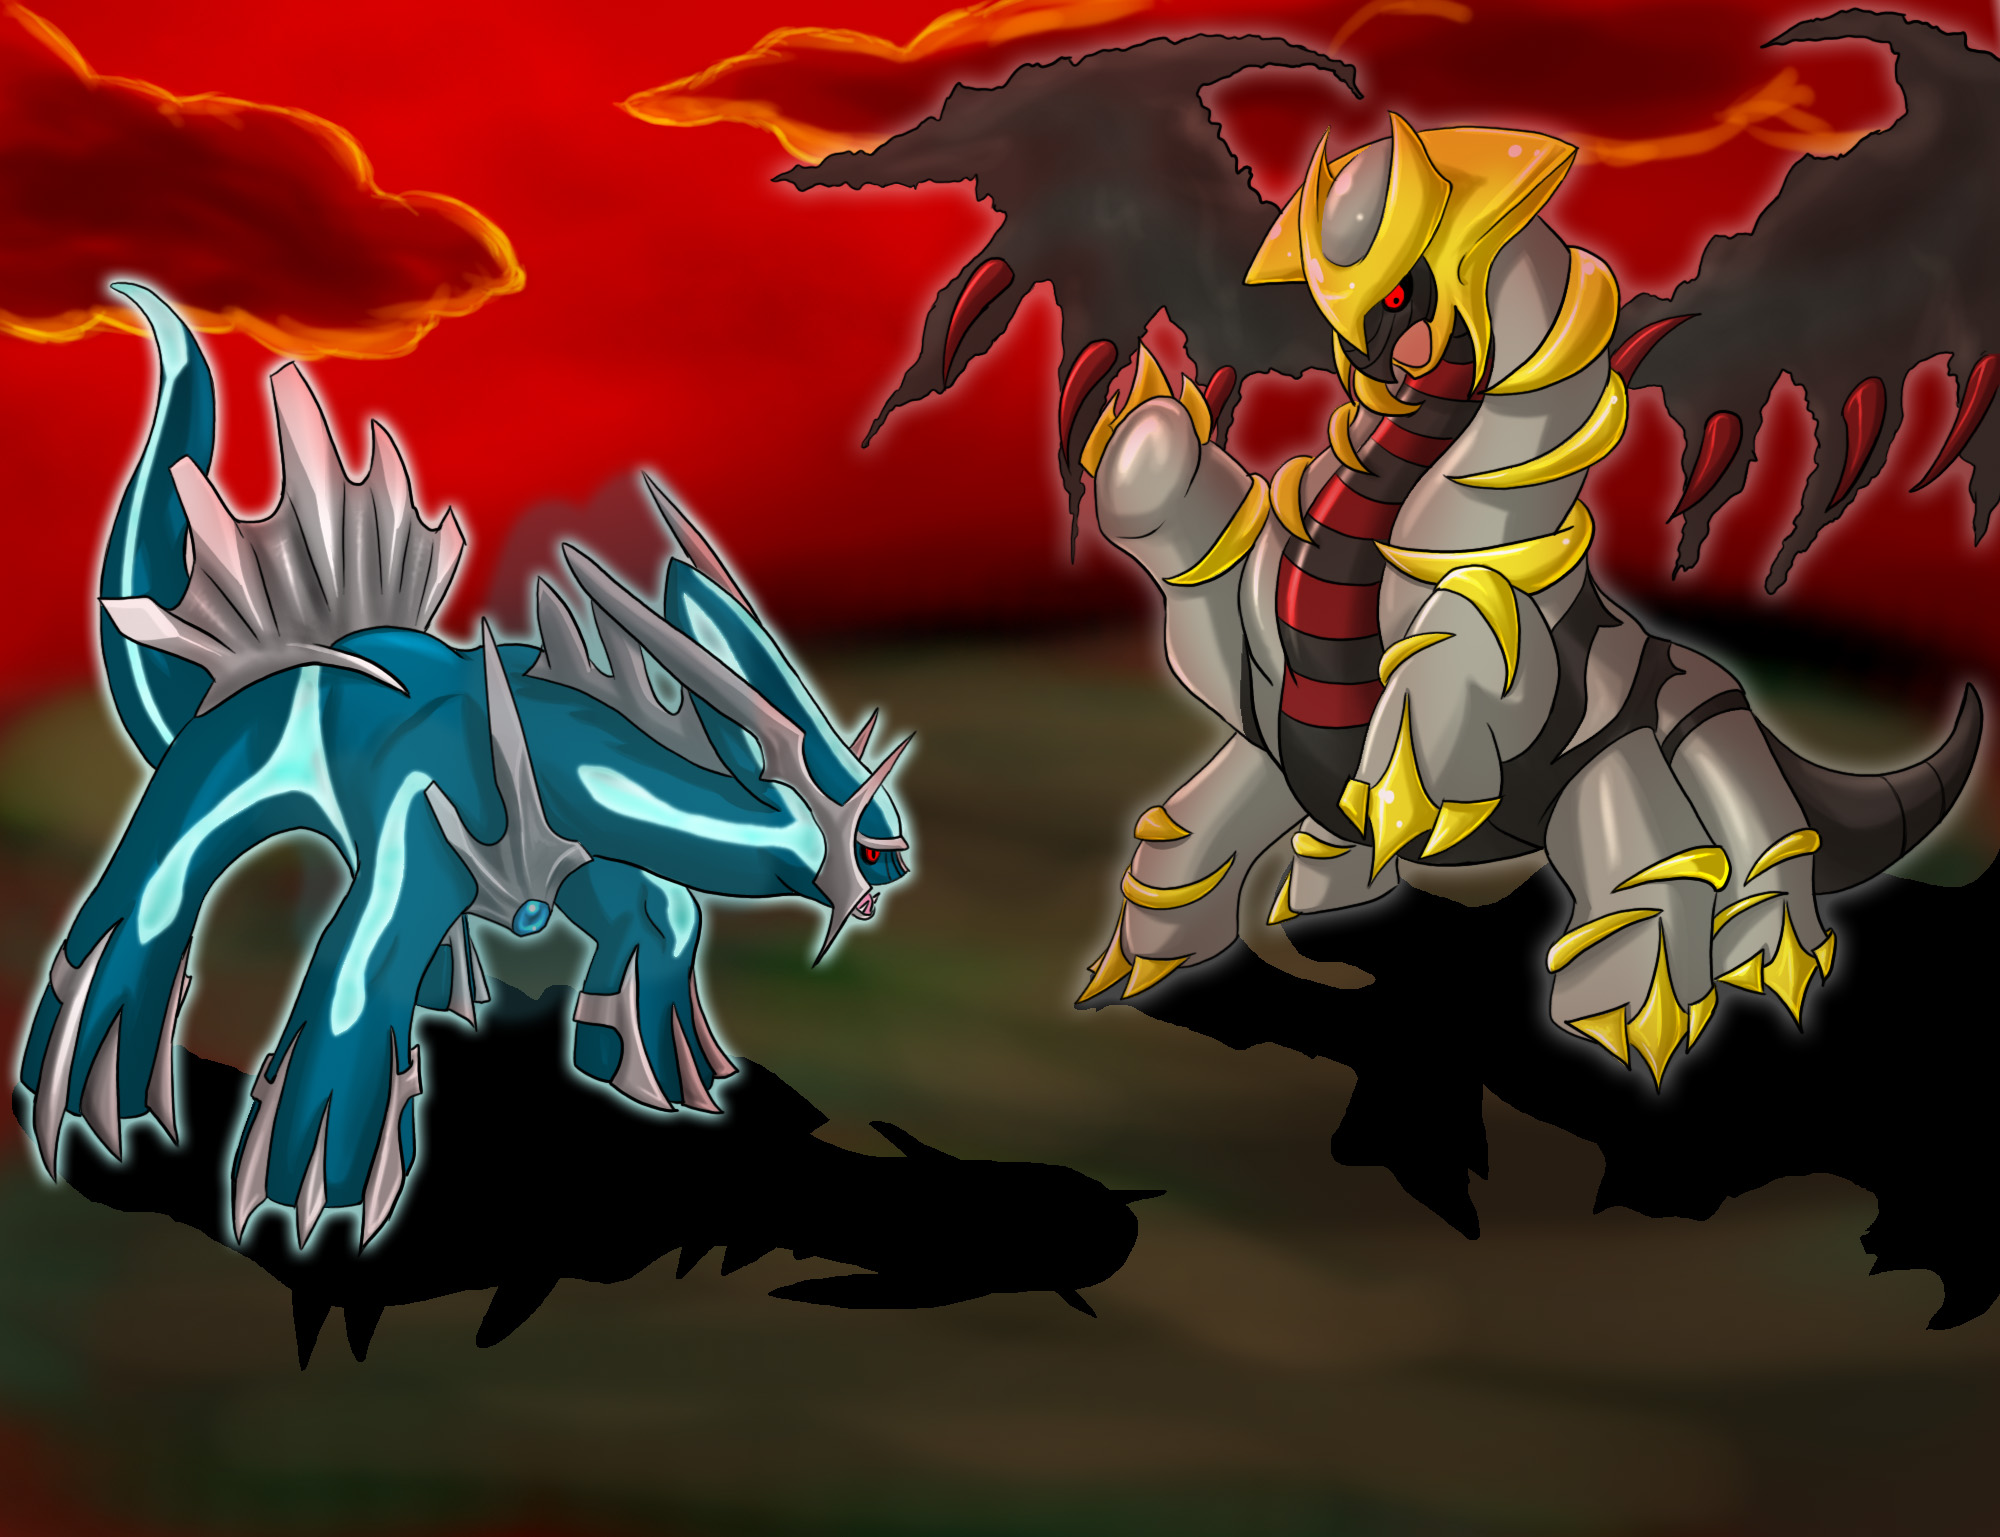 dialga palkia giratina arceus - photo #18